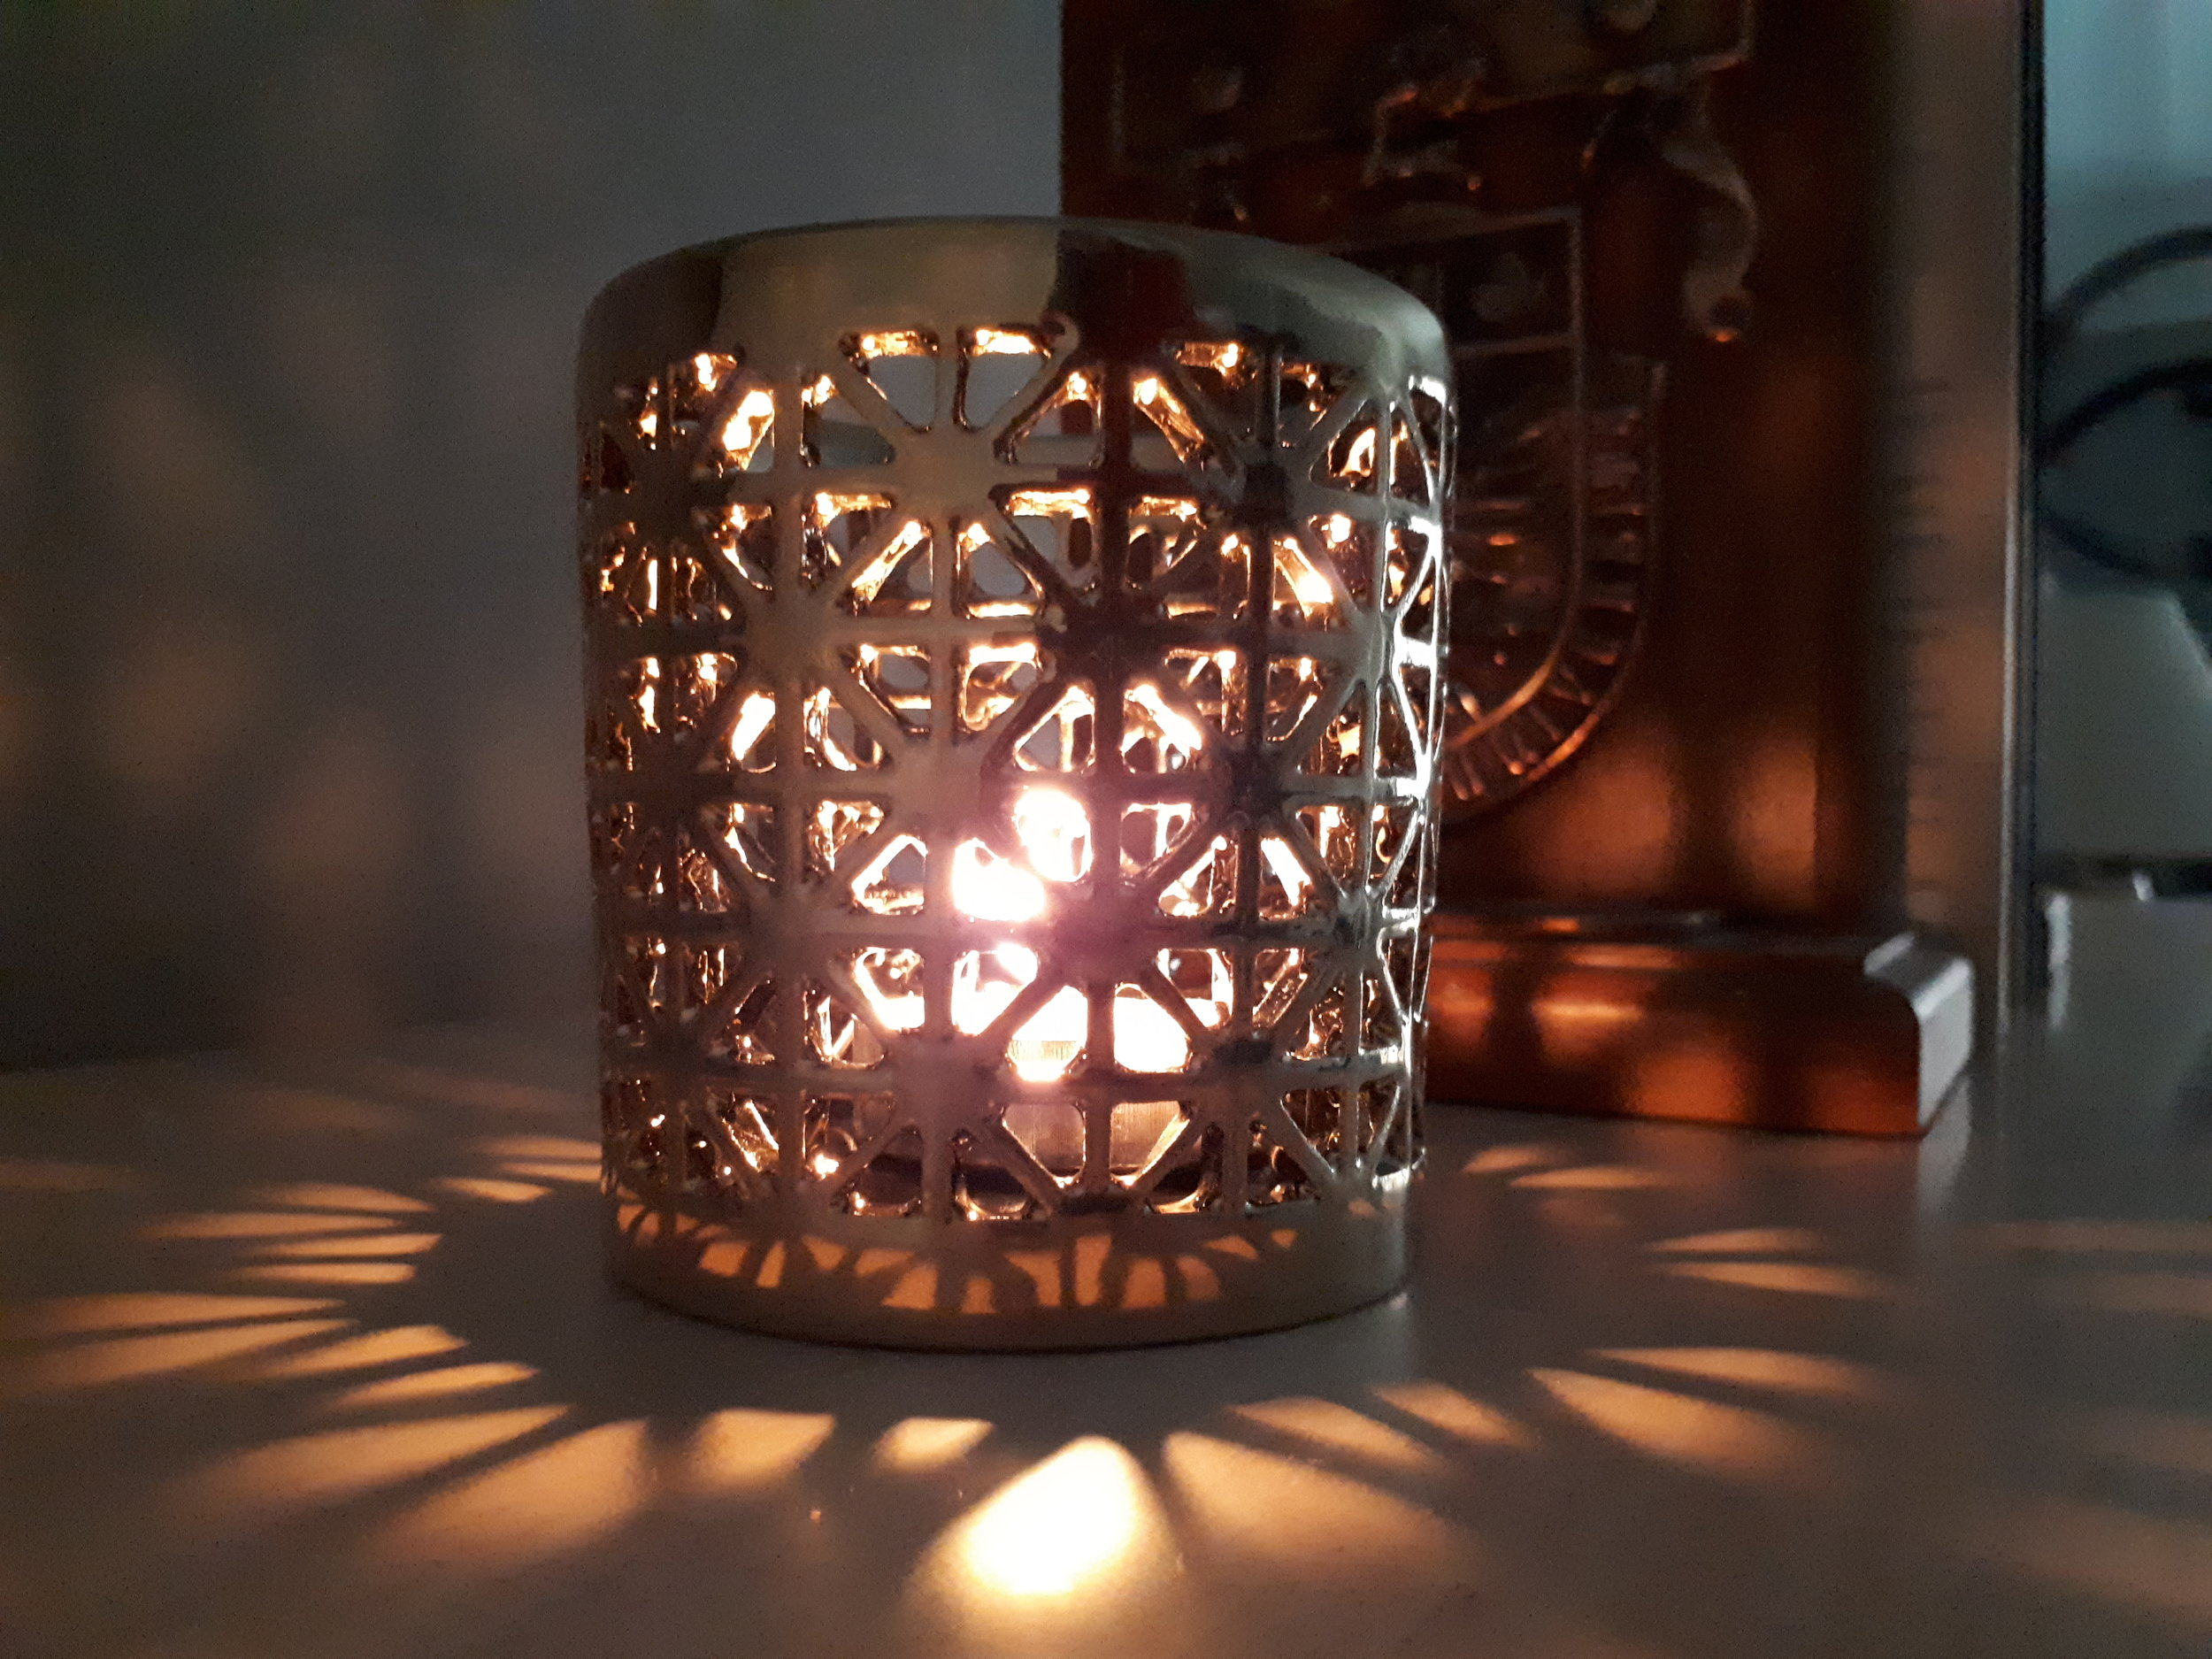 Verdun candle votives generate a beautiful, starry pattern when lit from inside, but are also a stylish, gold accent for every day.